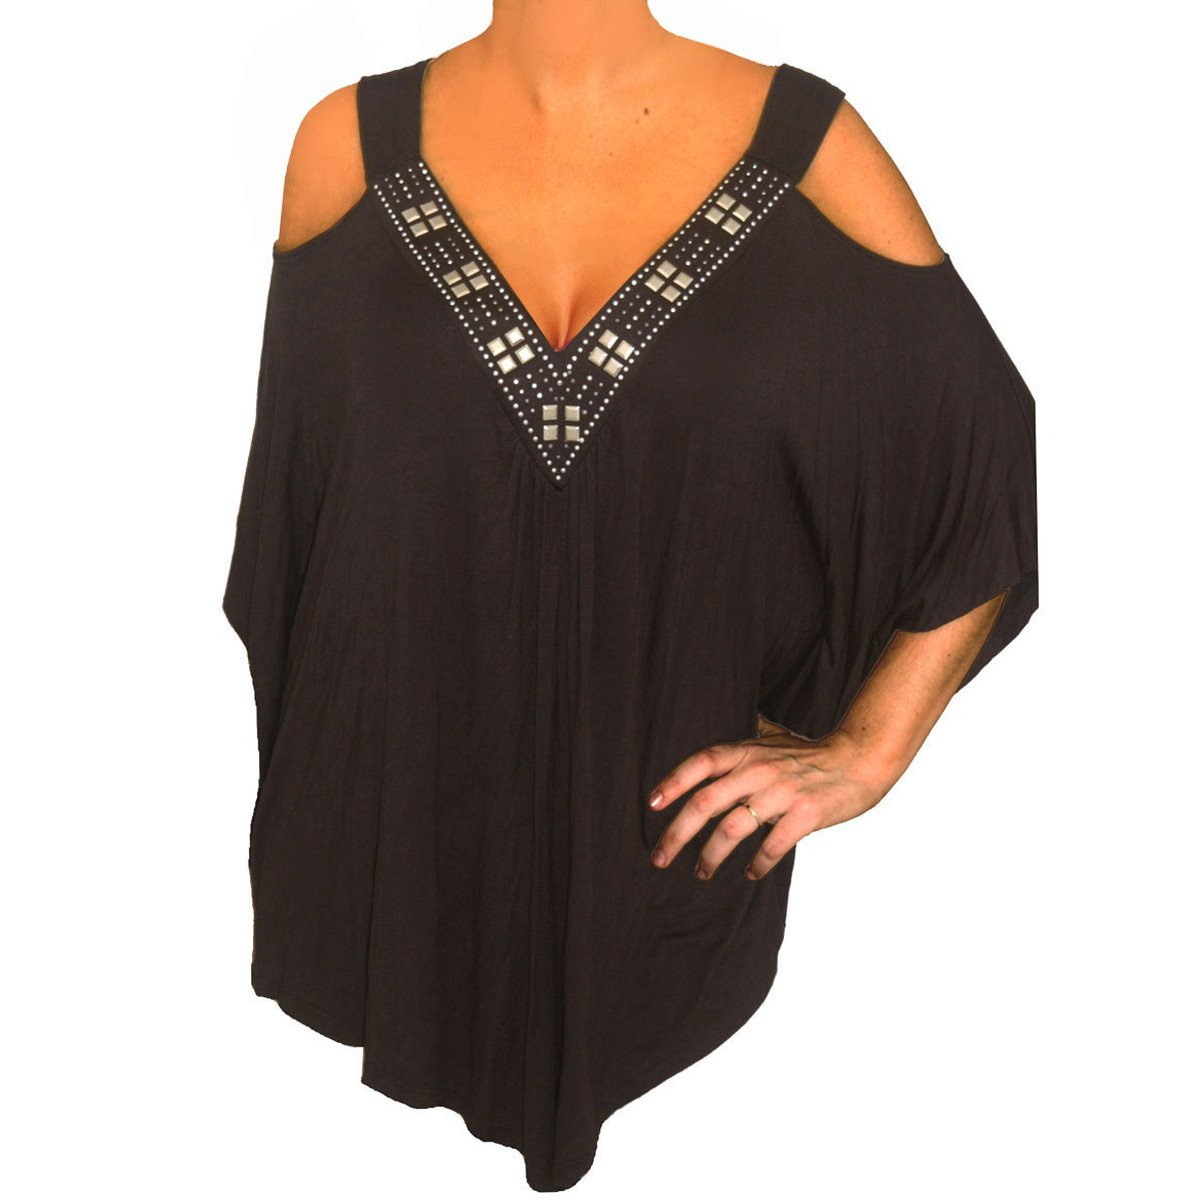 PS3 FUNFASH PLUS SIZE BLACK BEADS ANGEL SLEEVES PLUS SIZE TOP SHIRT NEW 2X 22 24